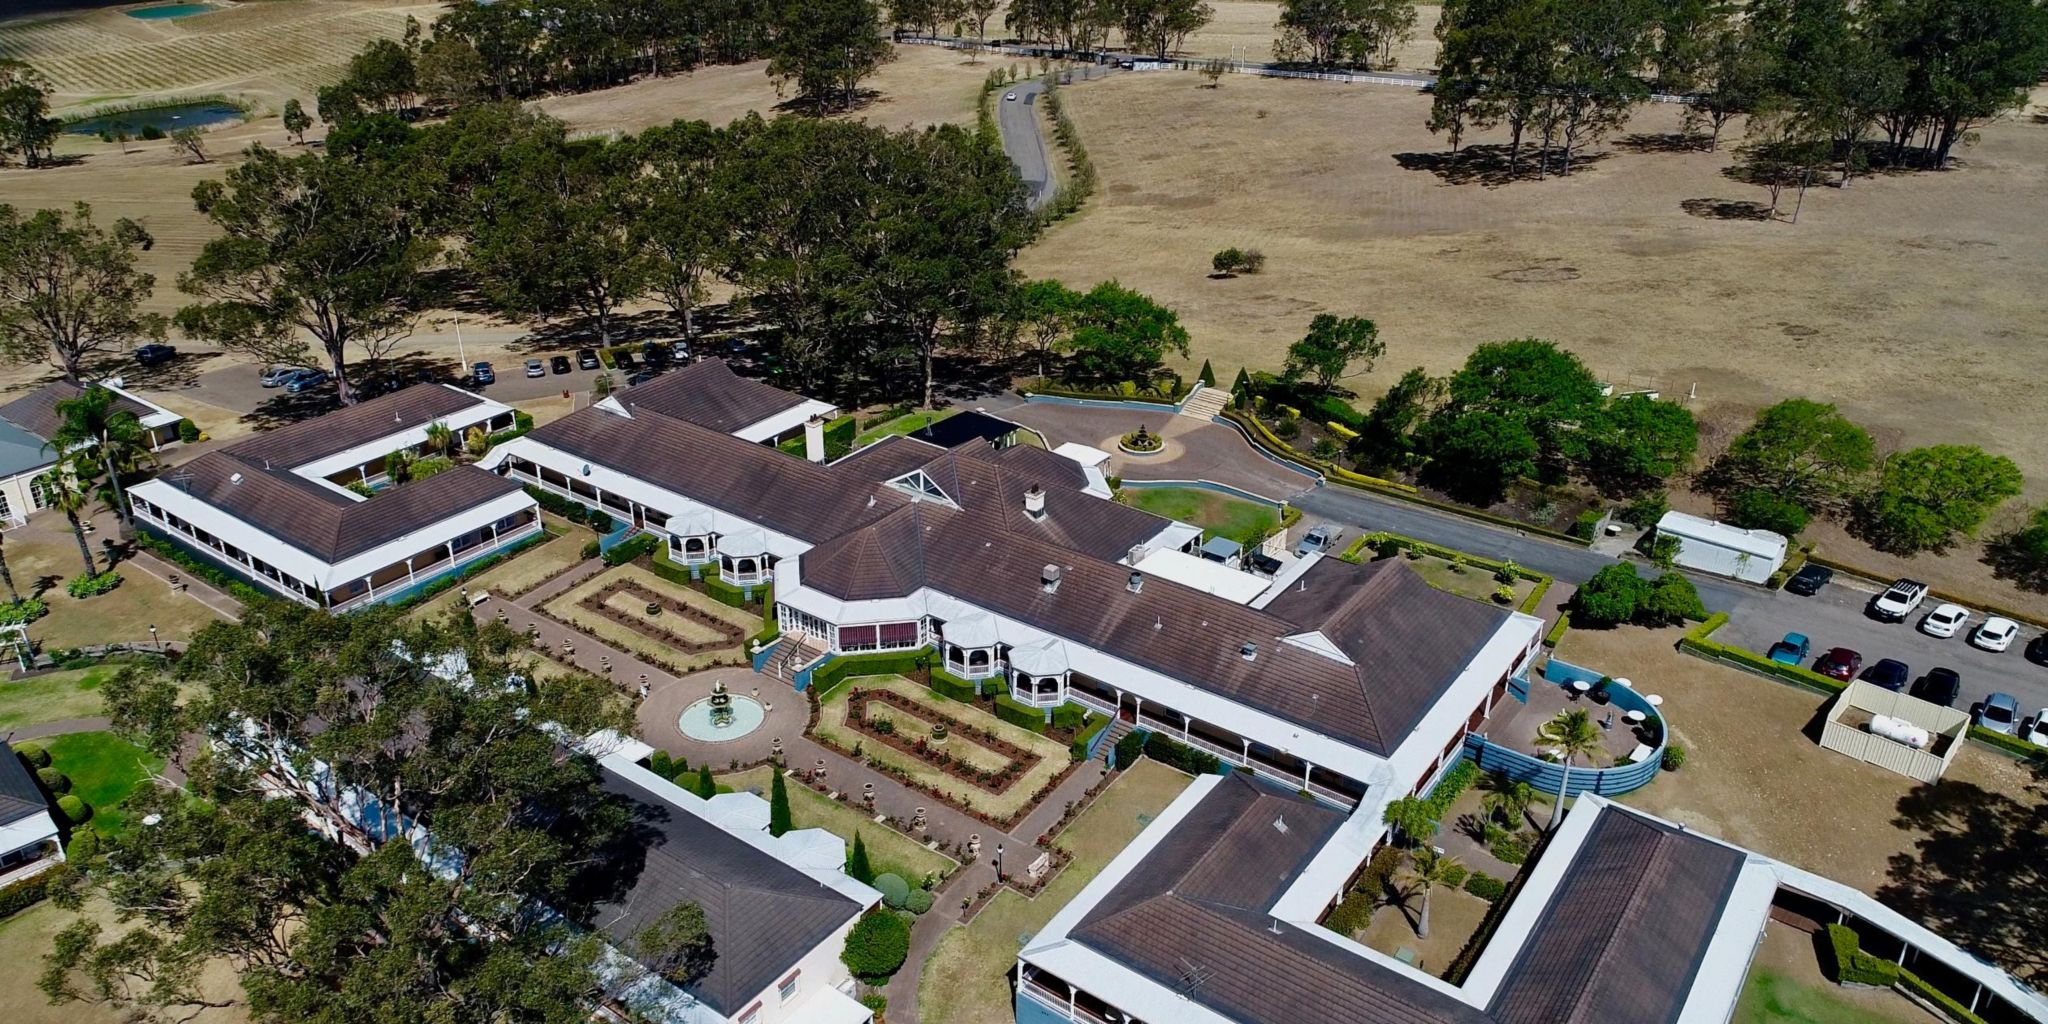 Hunter Valley A Boutique Destination View Of The Accommodation Buildings